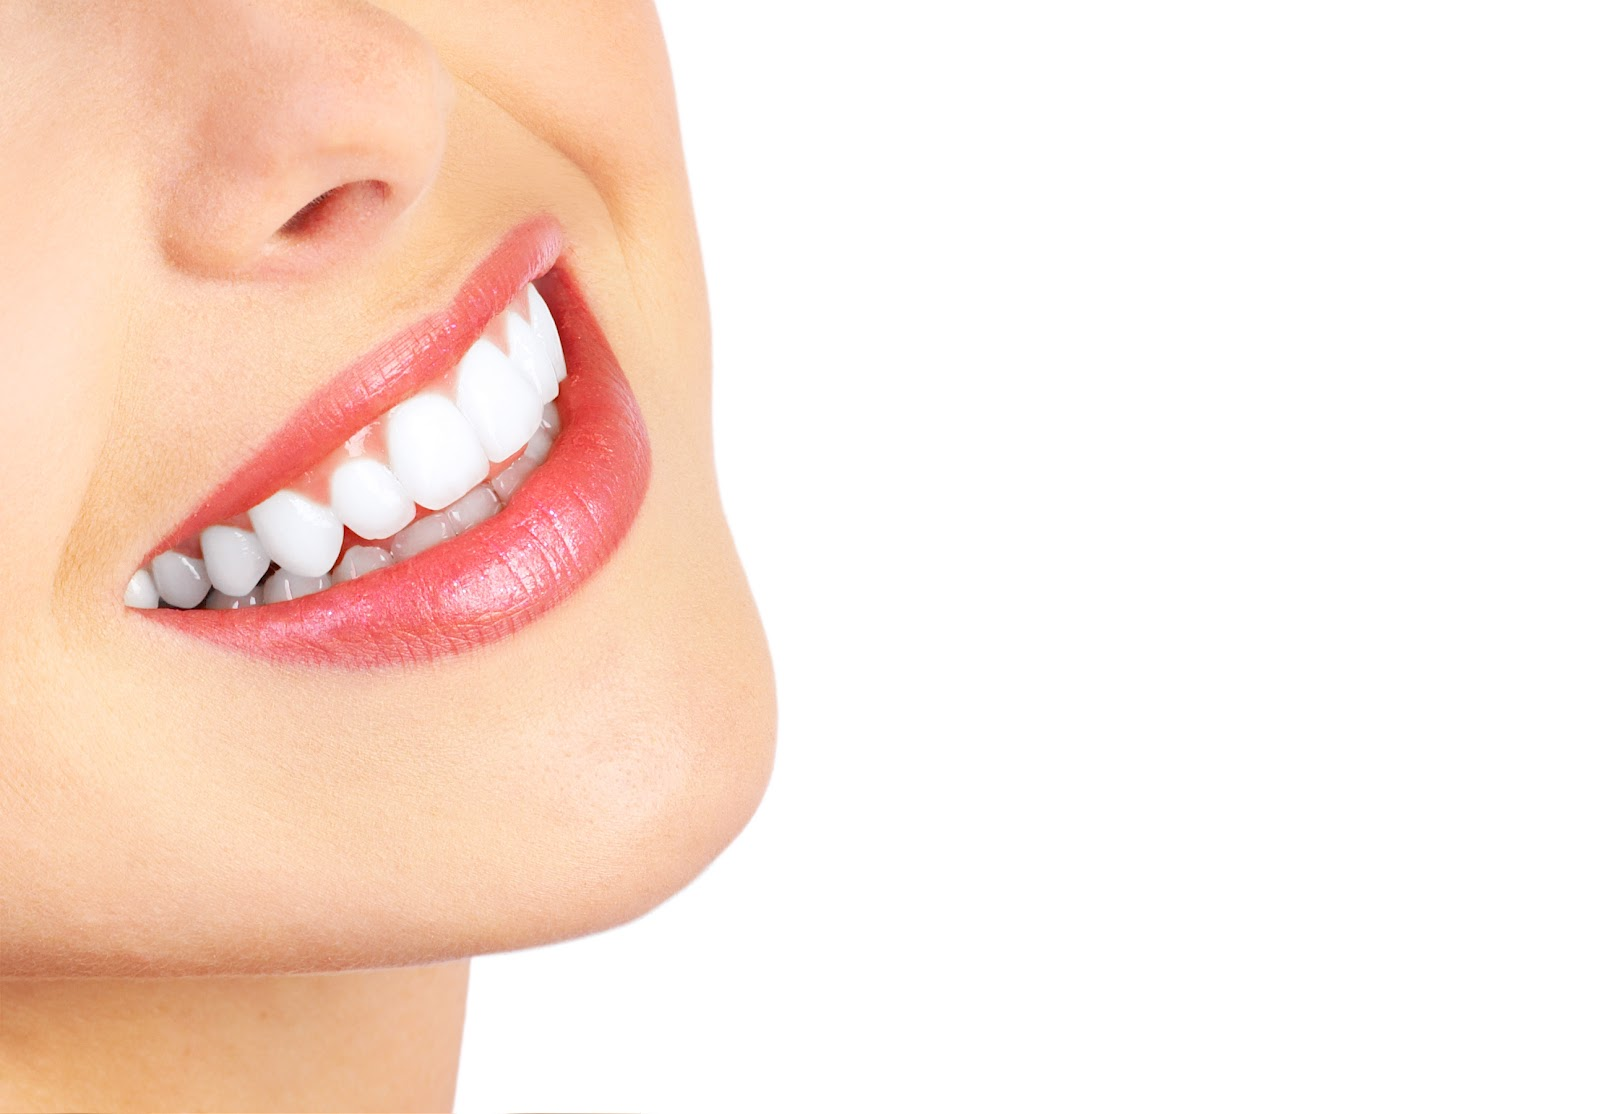 Health and Fitness: Healthy teeth